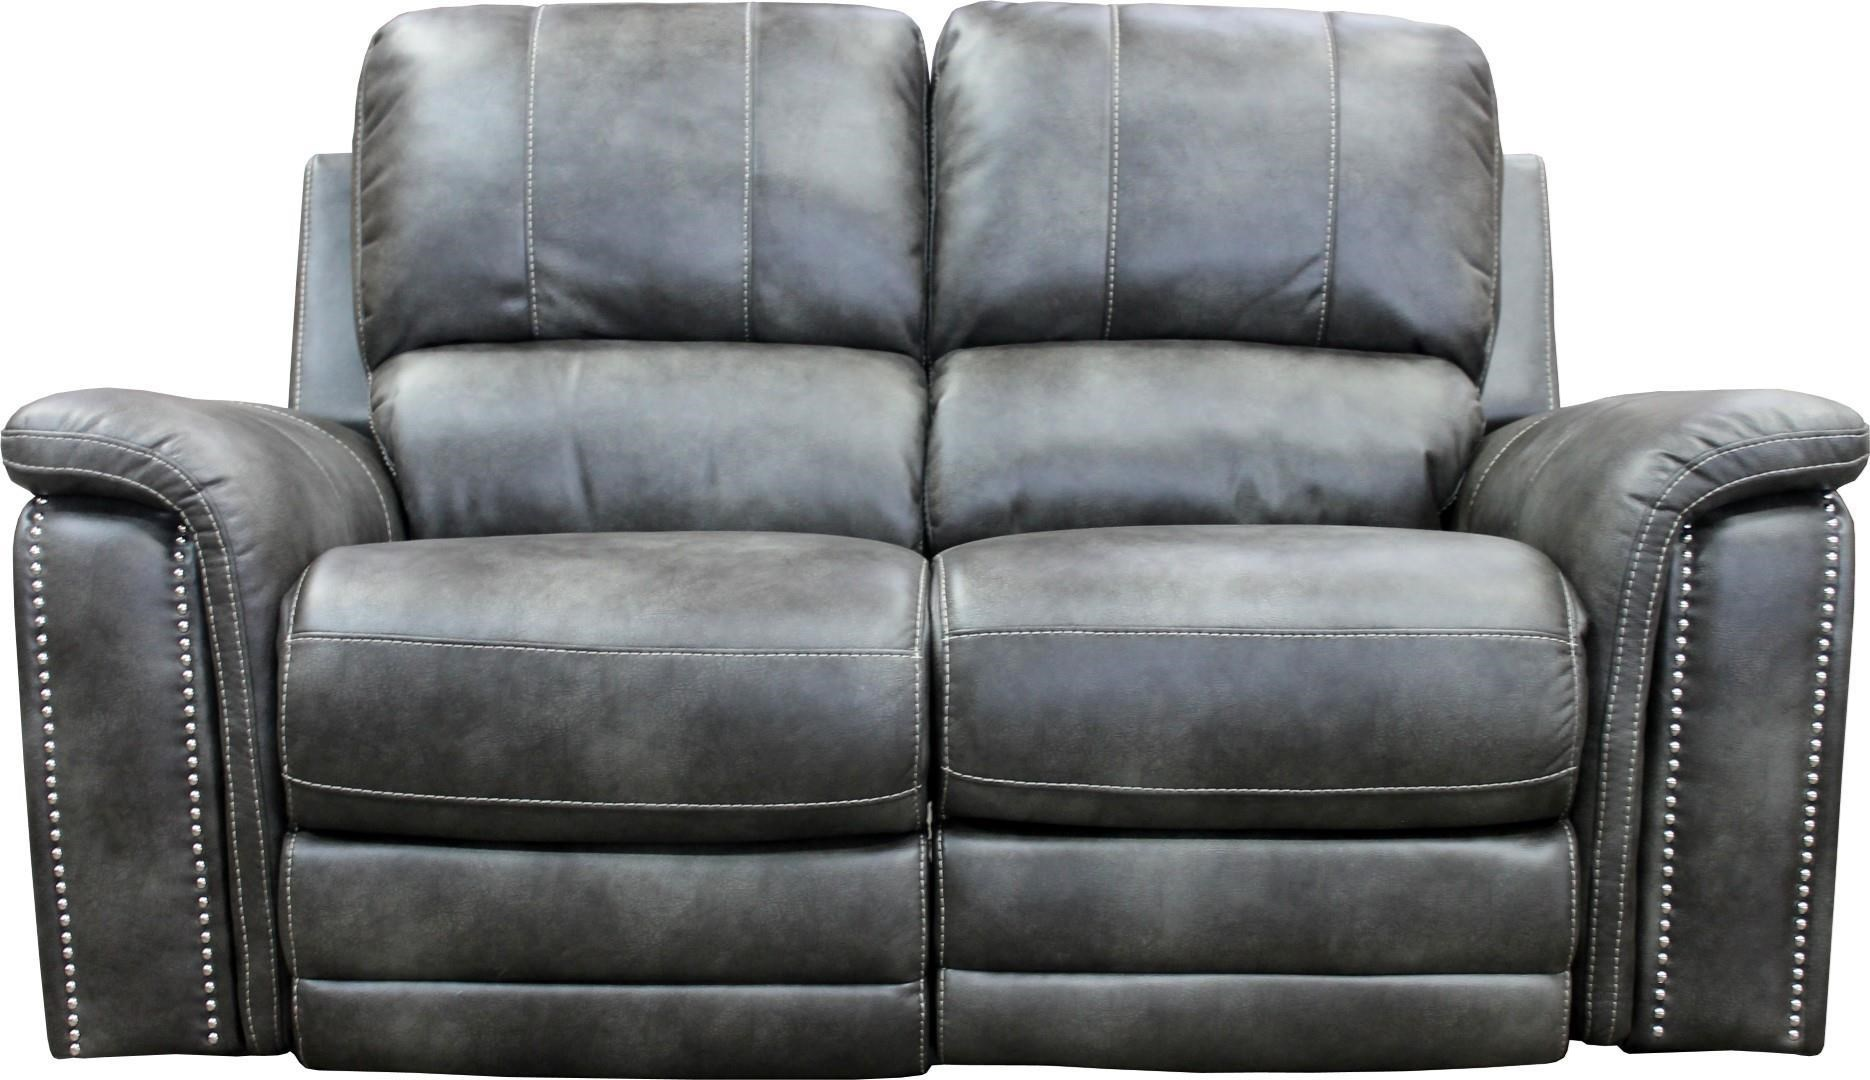 BELIZE MBEL PWR LOVESEAT DUAL RCLNR with USB & PWR HD by Parker House at Dream Home Interiors